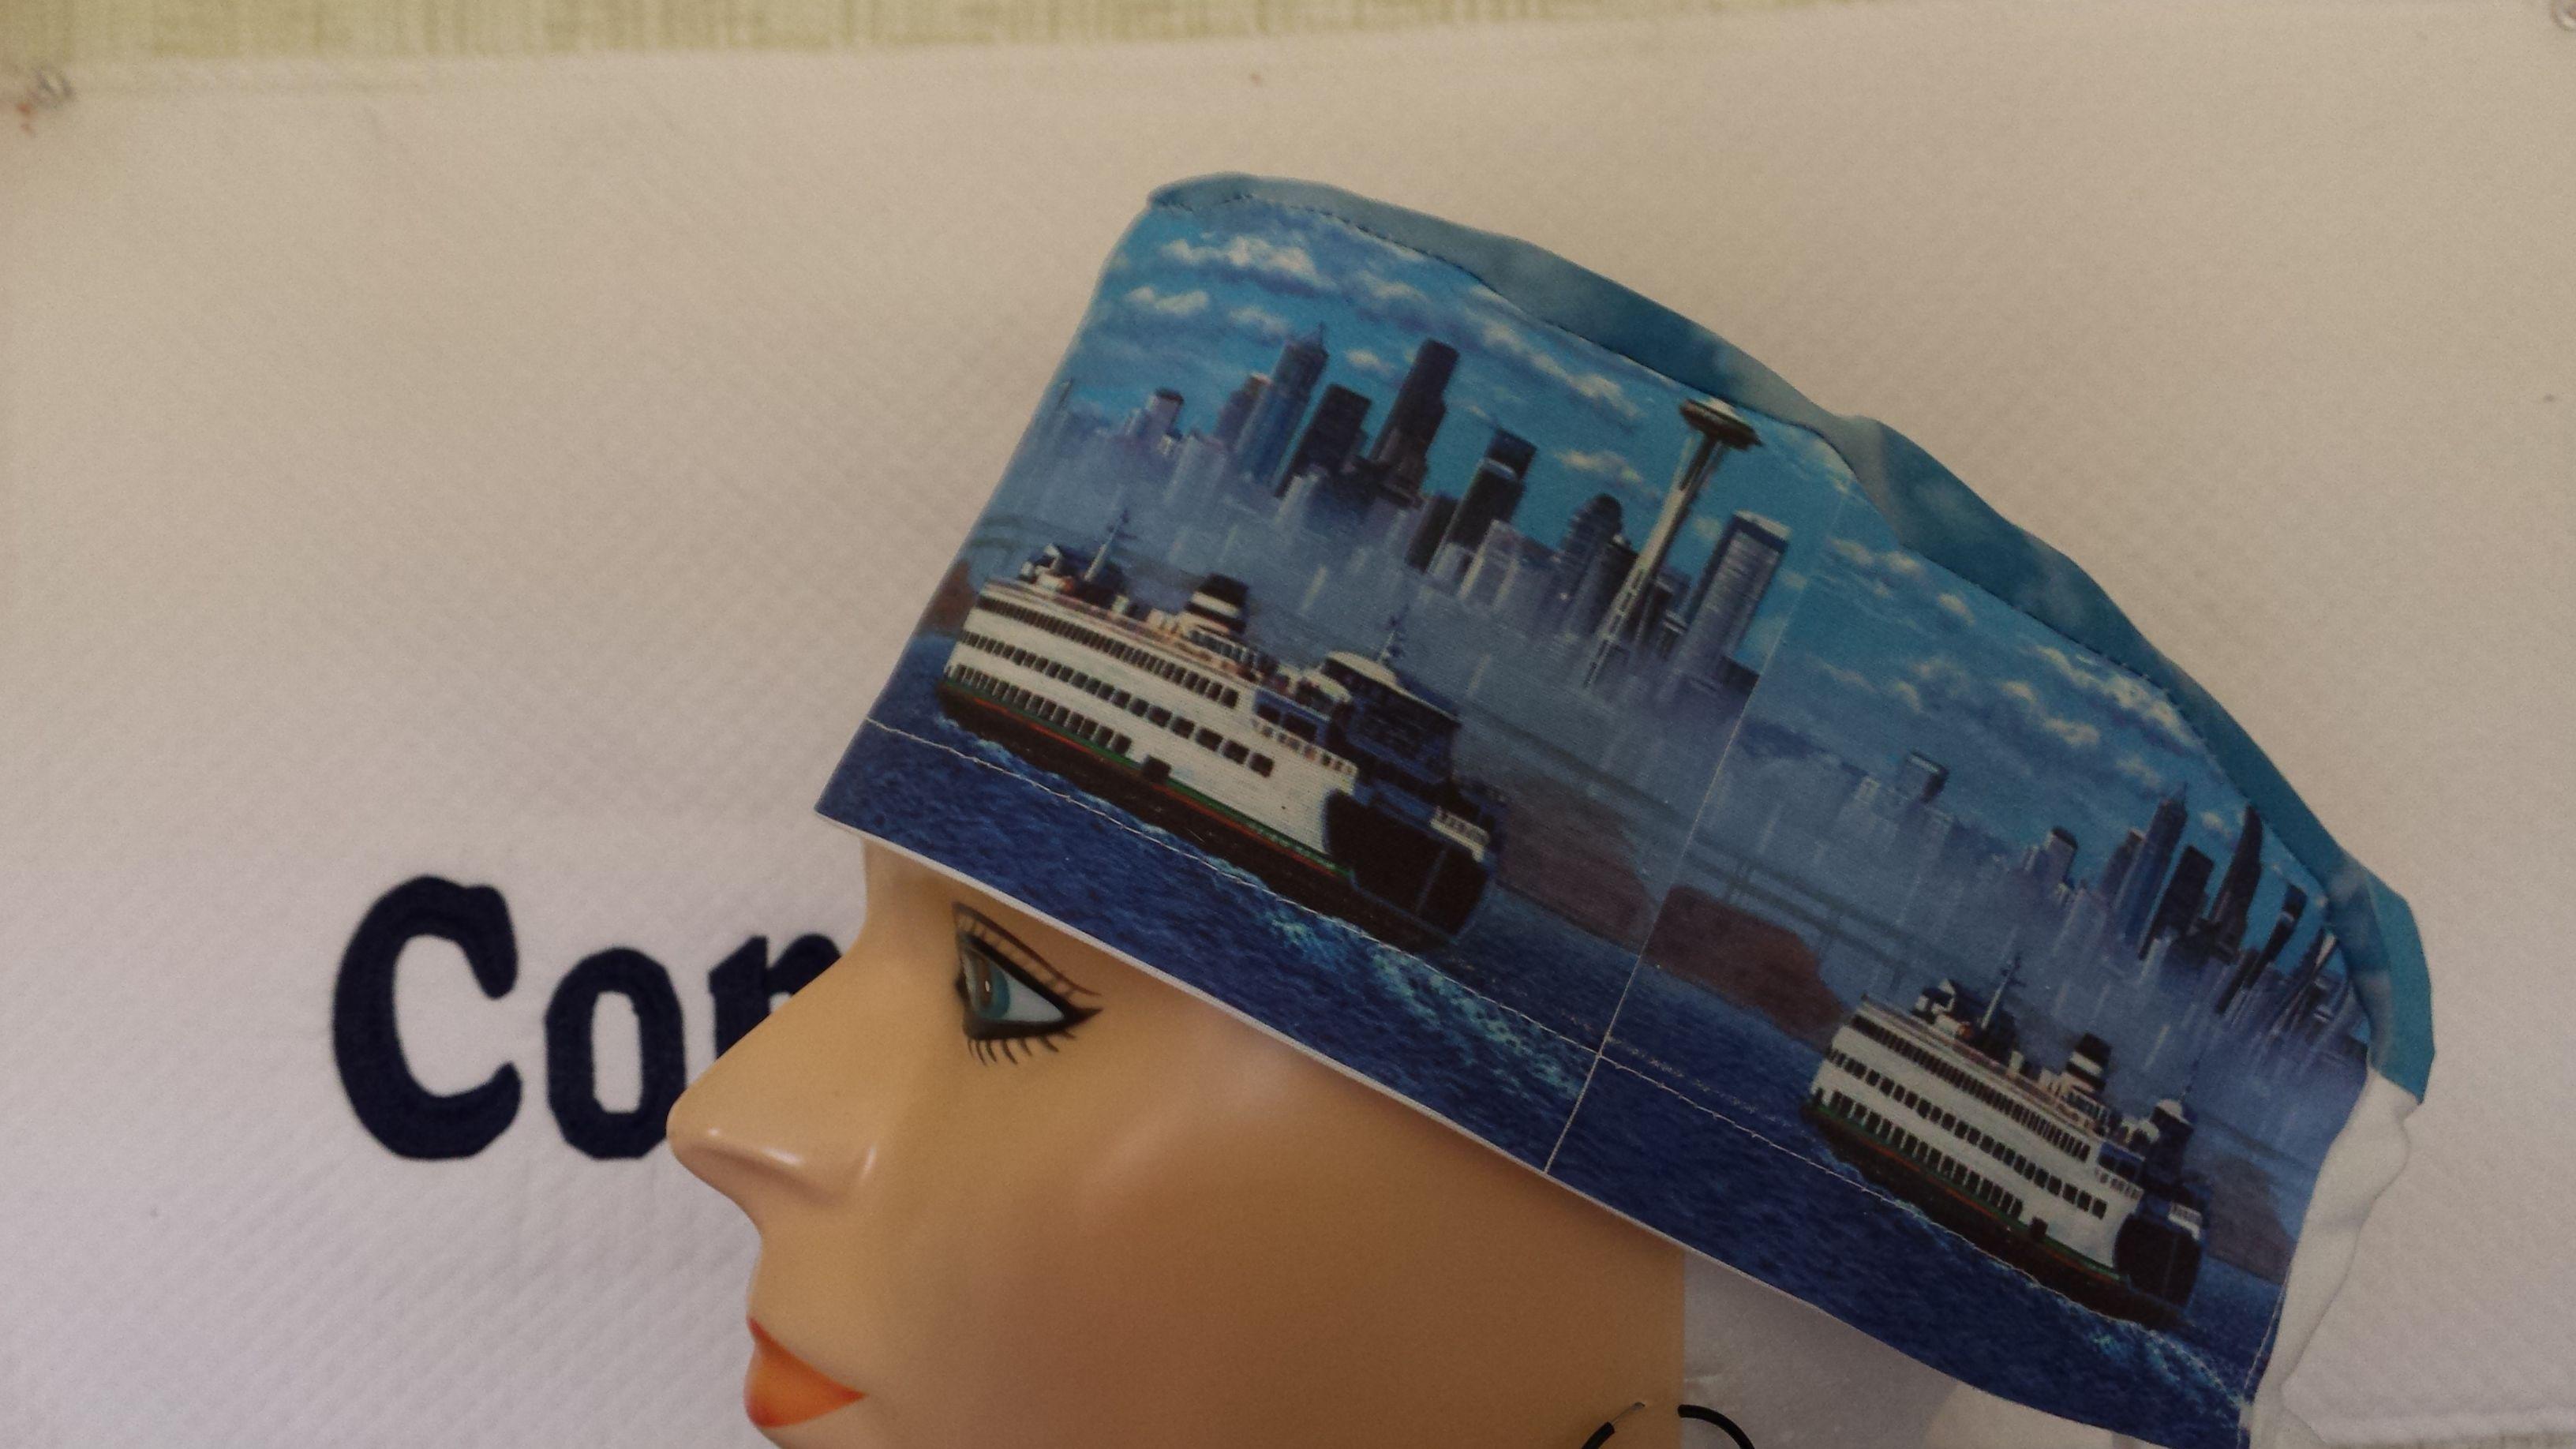 Male Scrub Cap Imprinted With A Ferry Boat Image Covering The Entire Reminiscent Of Used In Greys Anatomy Dr McDreamy